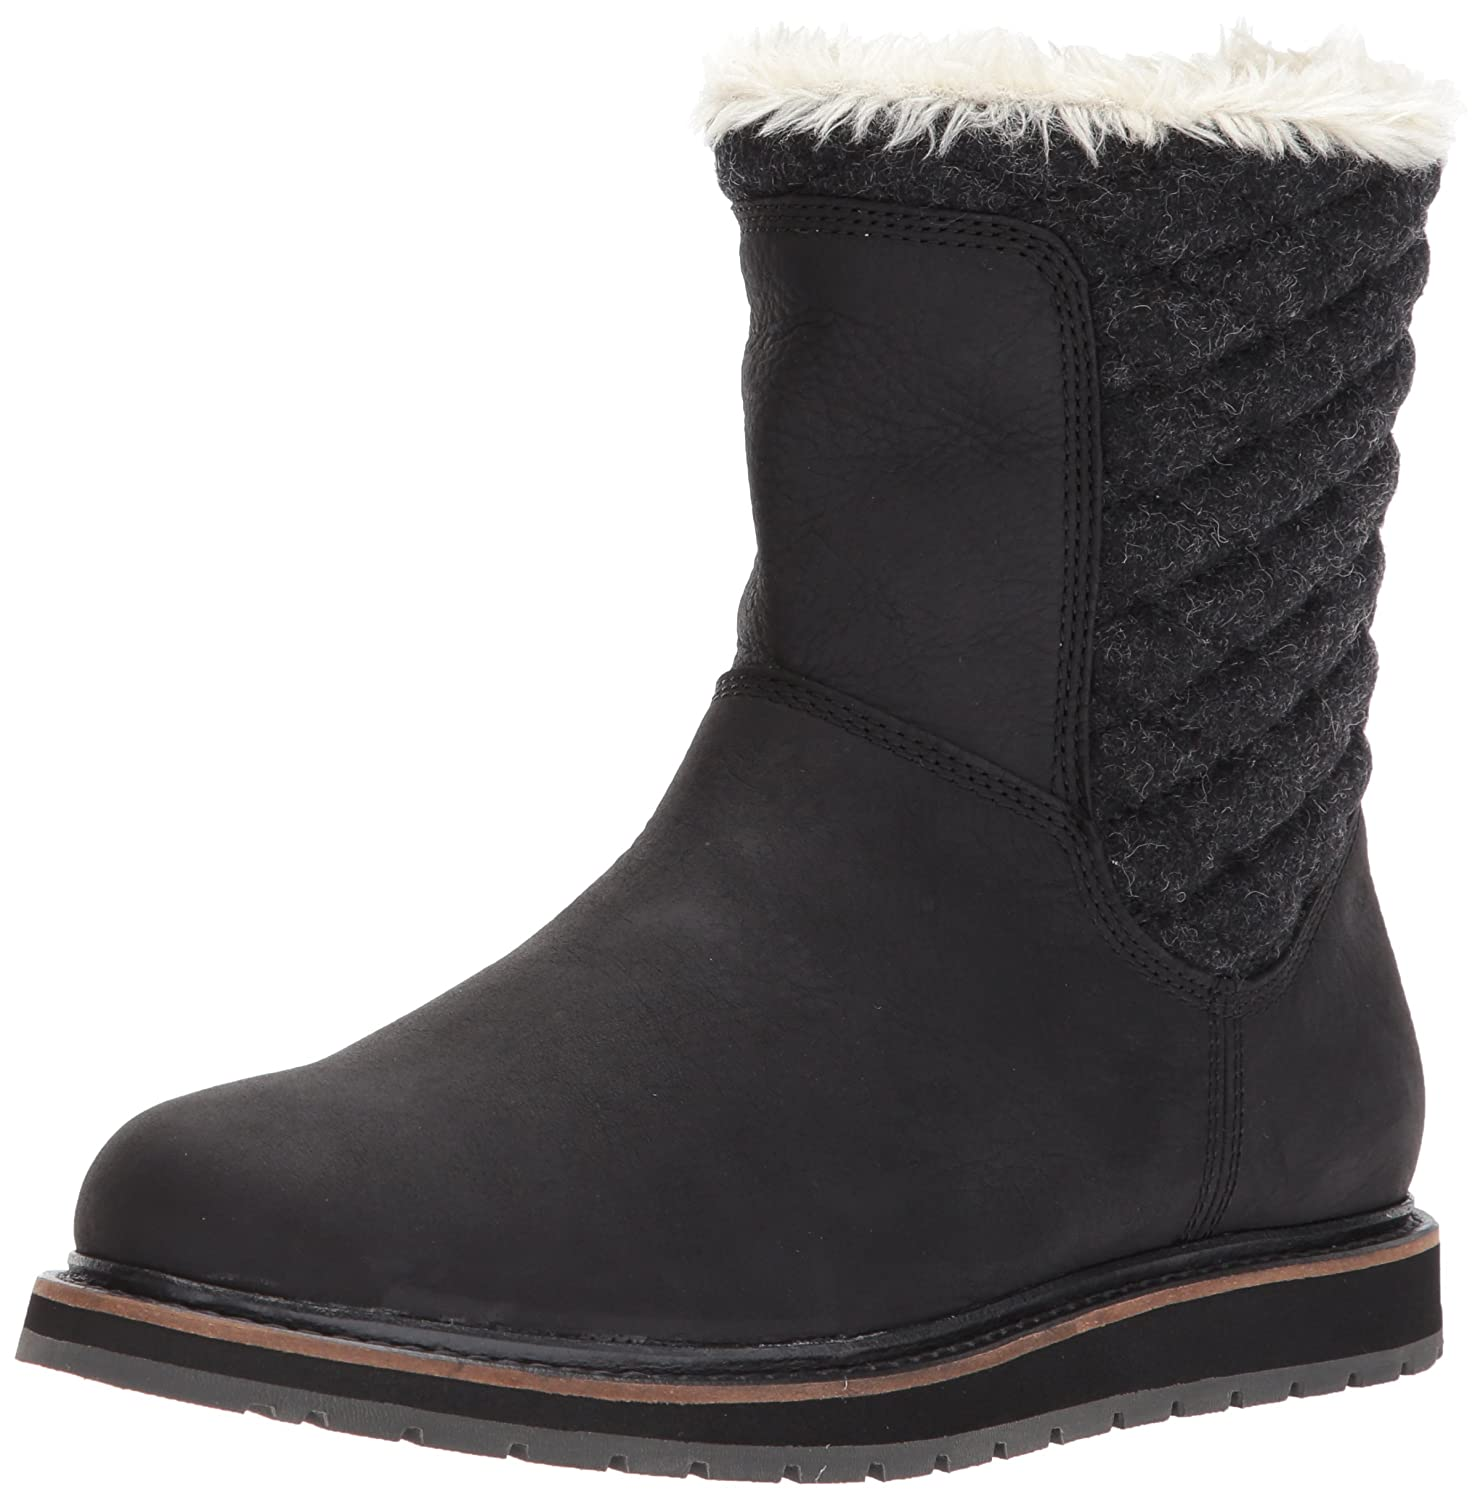 Helly Hansen Women's Seraphina Winter Boot B01MZIA5H0 7.5 B(M) US|Jet Black/Angora/Black